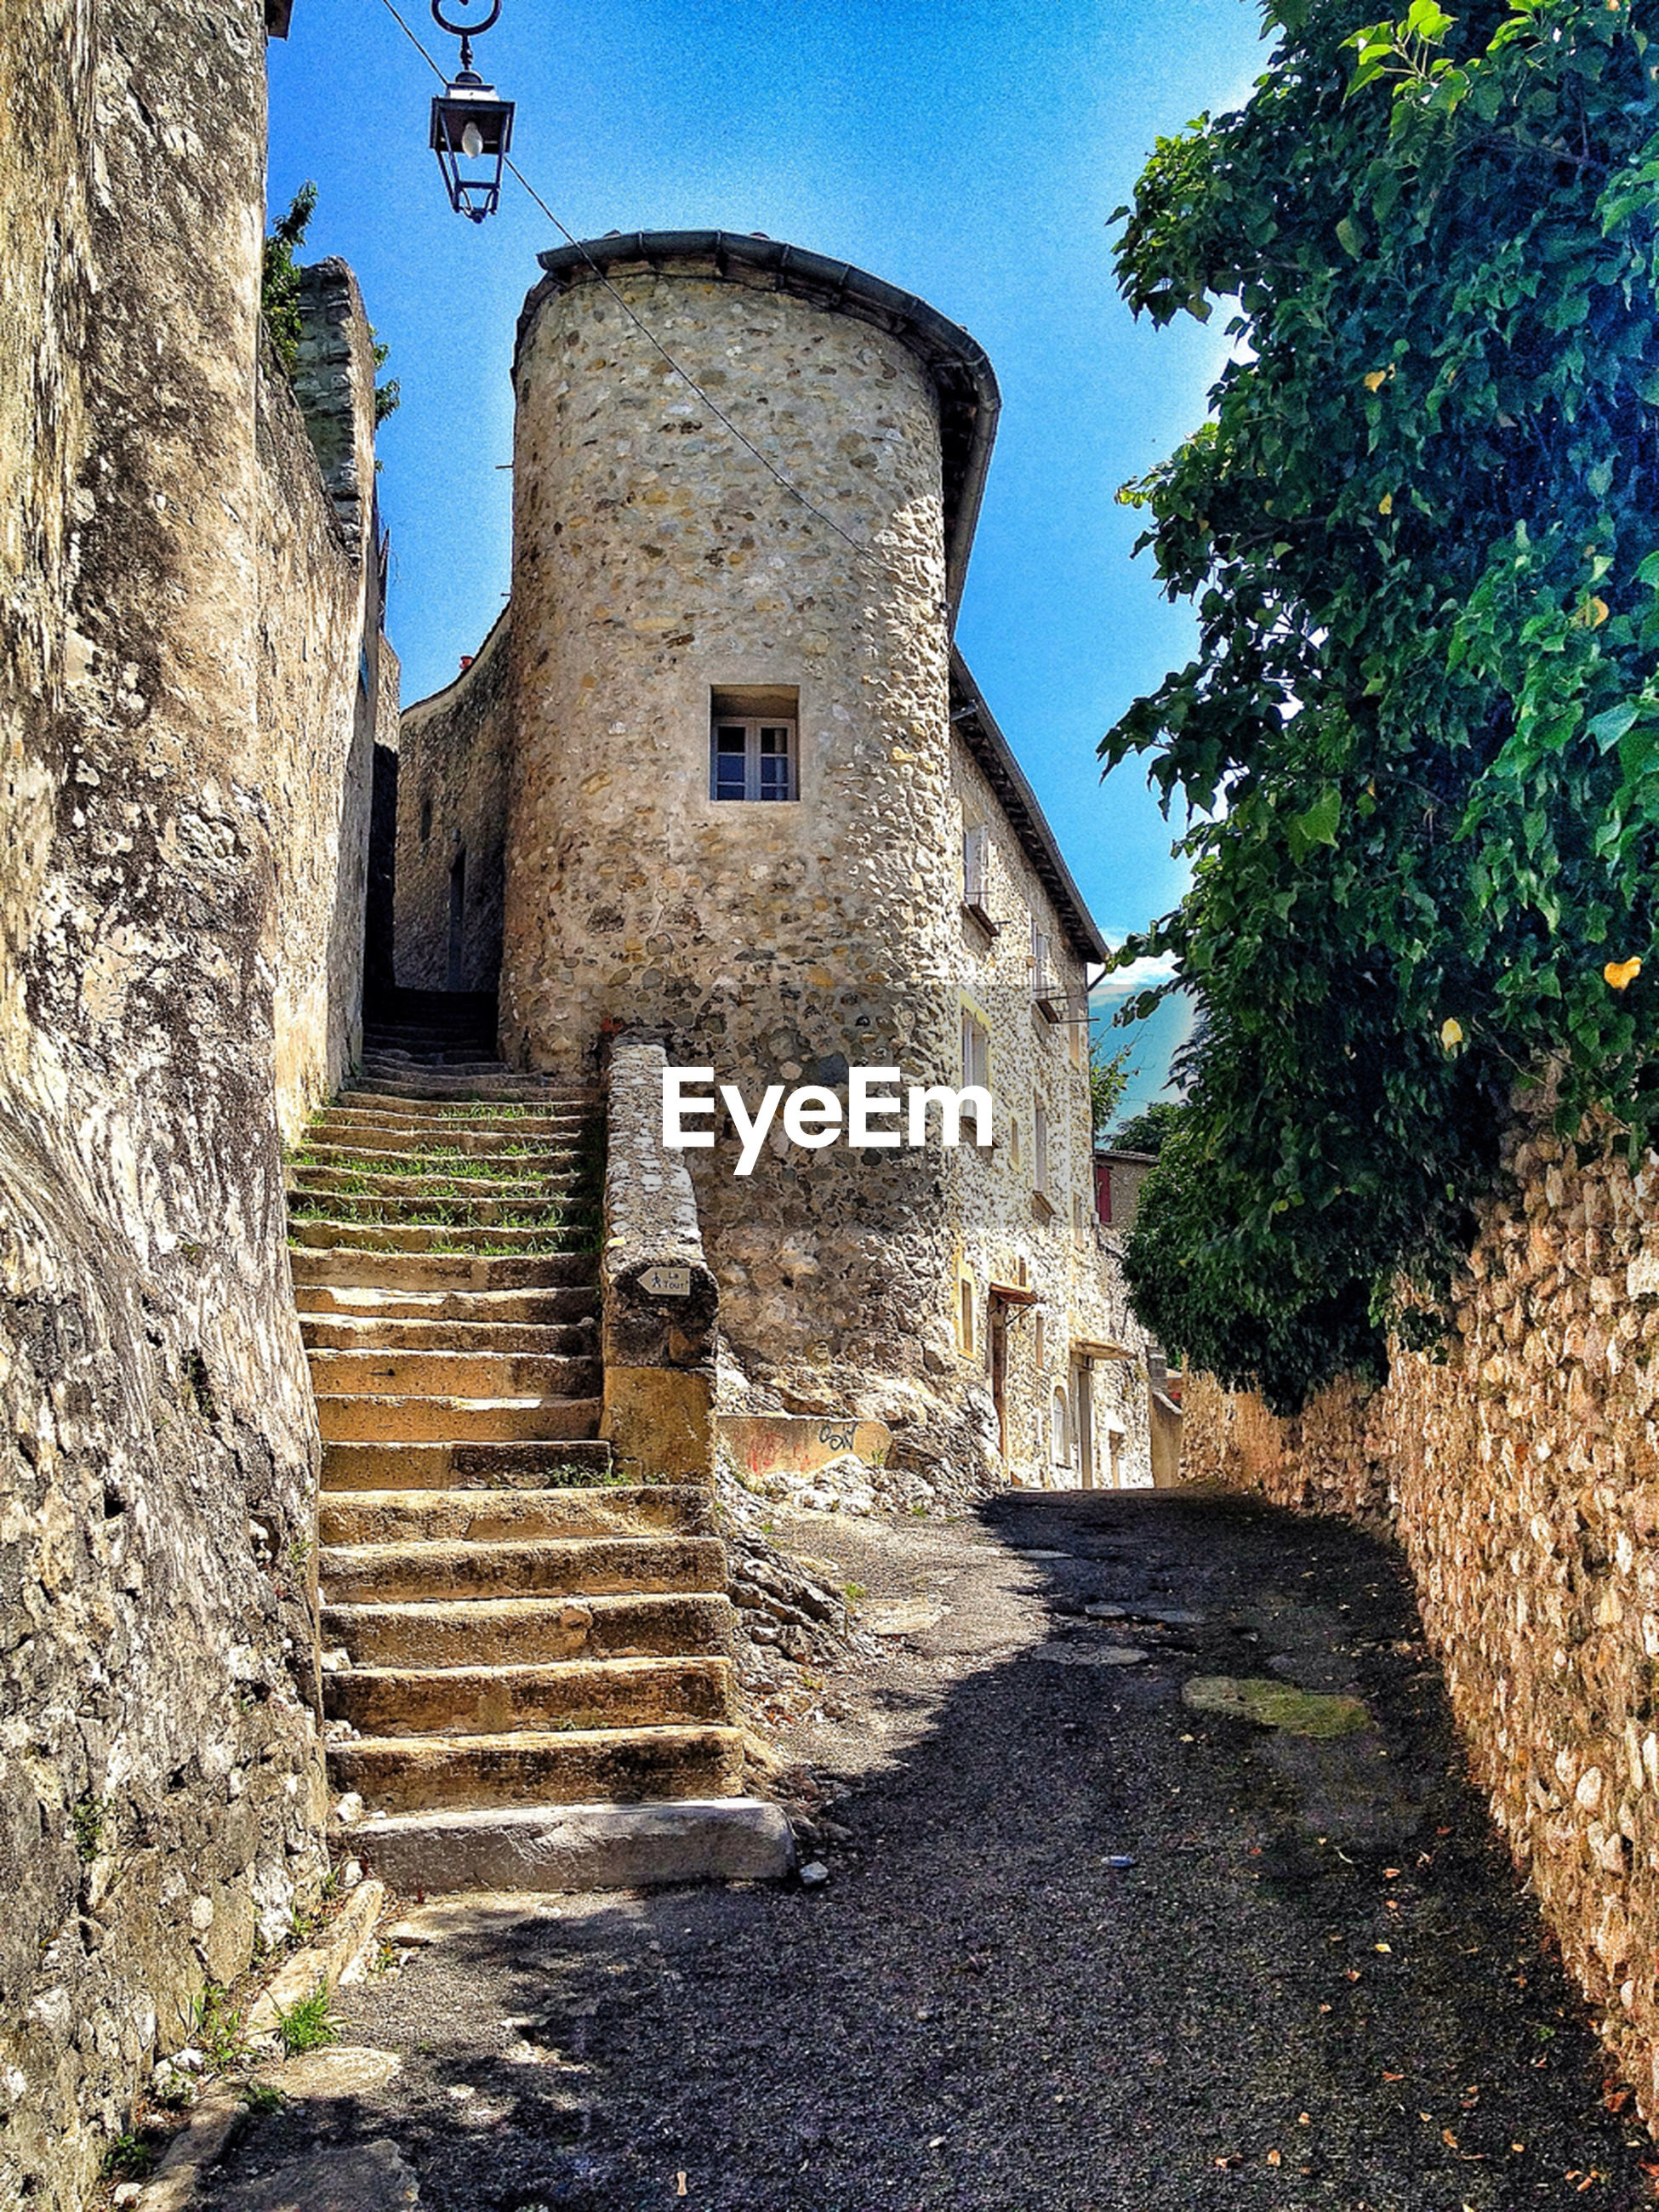 architecture, built structure, building exterior, steps, the way forward, clear sky, steps and staircases, tree, staircase, stone wall, old, history, low angle view, sunlight, building, day, wall - building feature, sky, outdoors, footpath